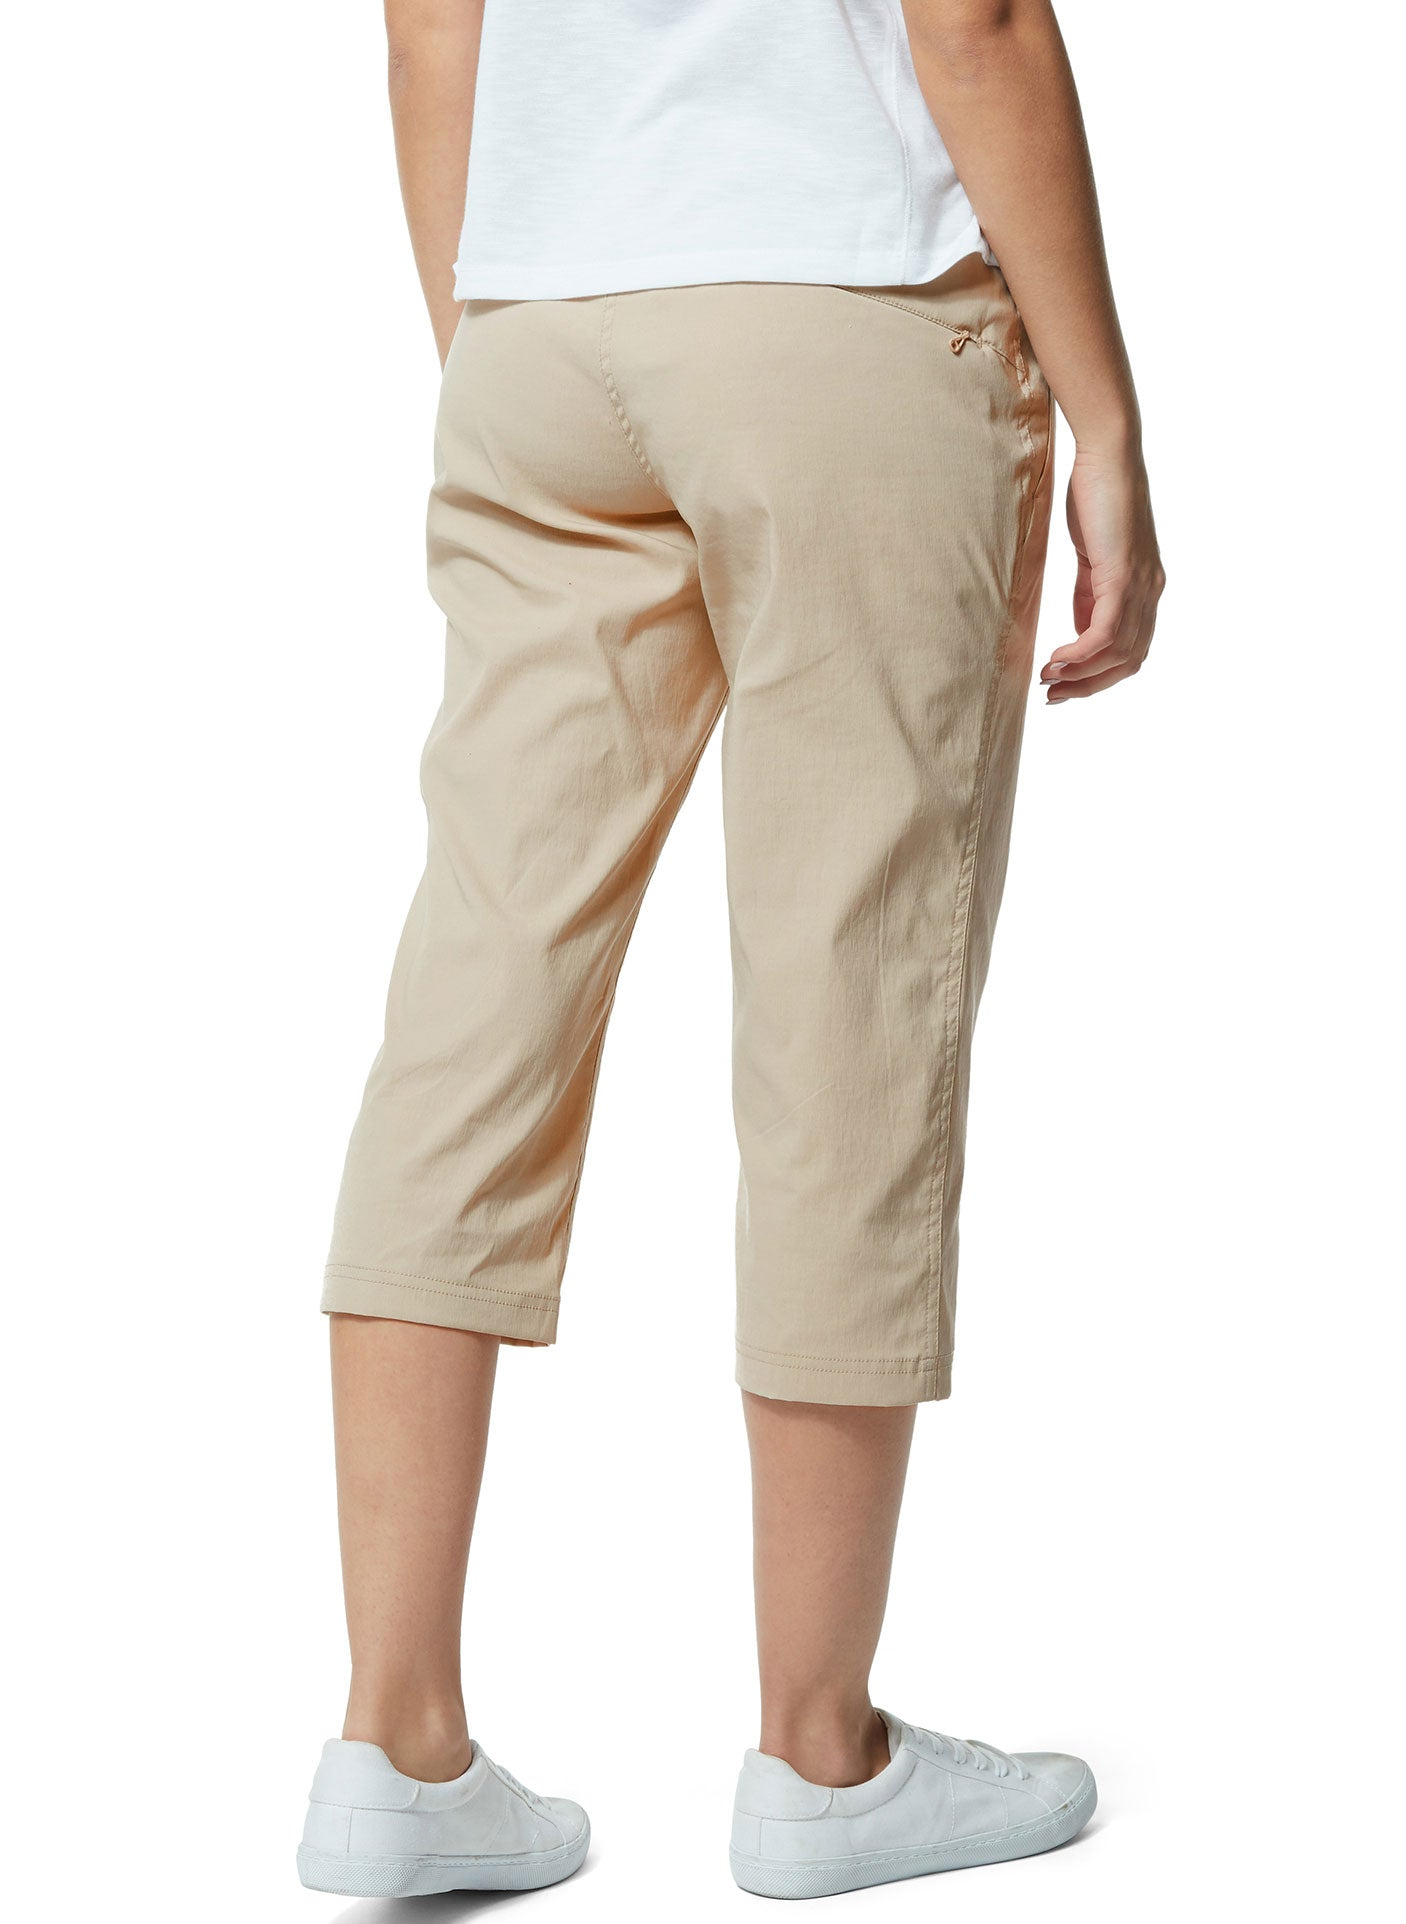 Rear view Craghoppers Kiwi Pro Crop II Trousers in desert sand